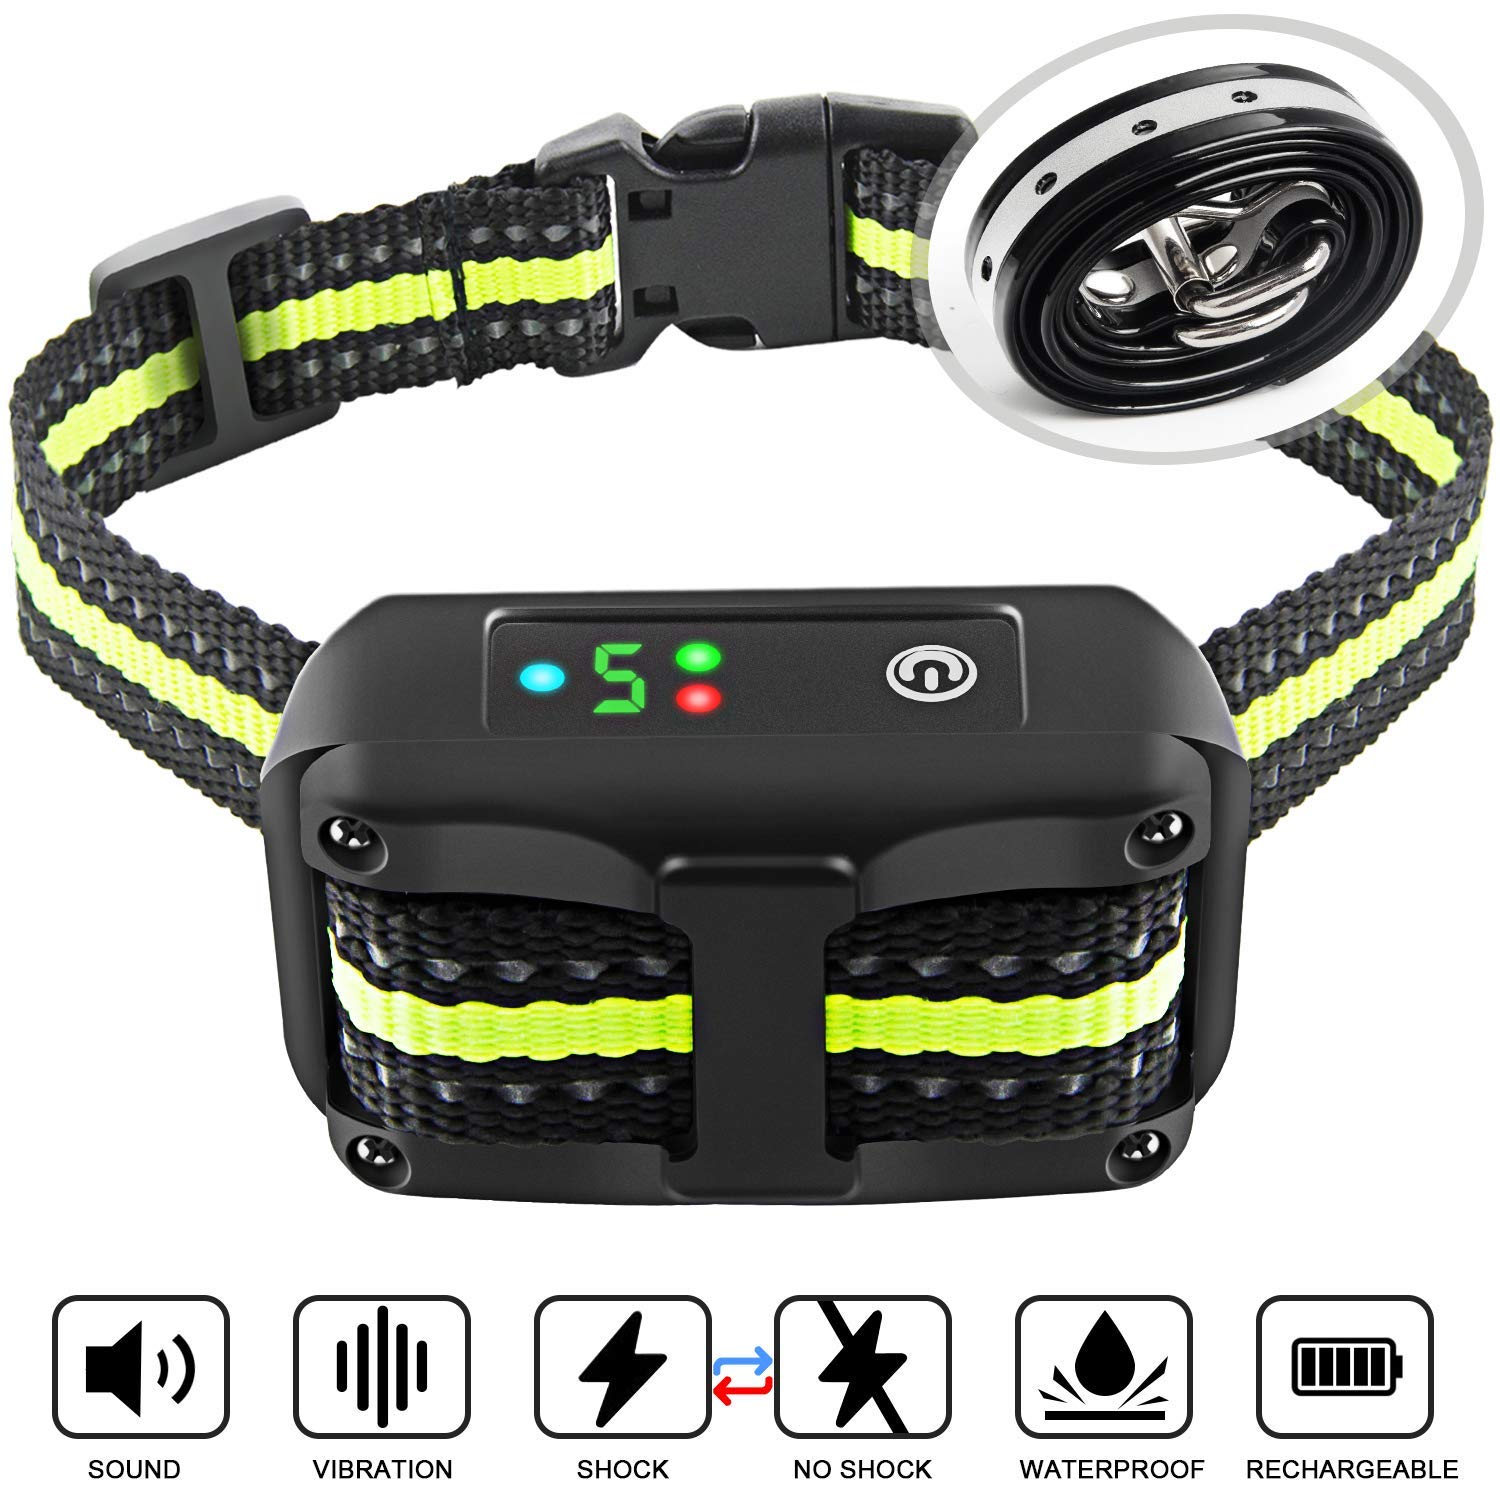 Bark Collar 2019 Upgrade Version No Bark Collar Rechargeable Anti bark Collar with Beep Vibration and No Harm Shock Smart Detection Module Bark collar for Small Medium Large Dog by Ankace